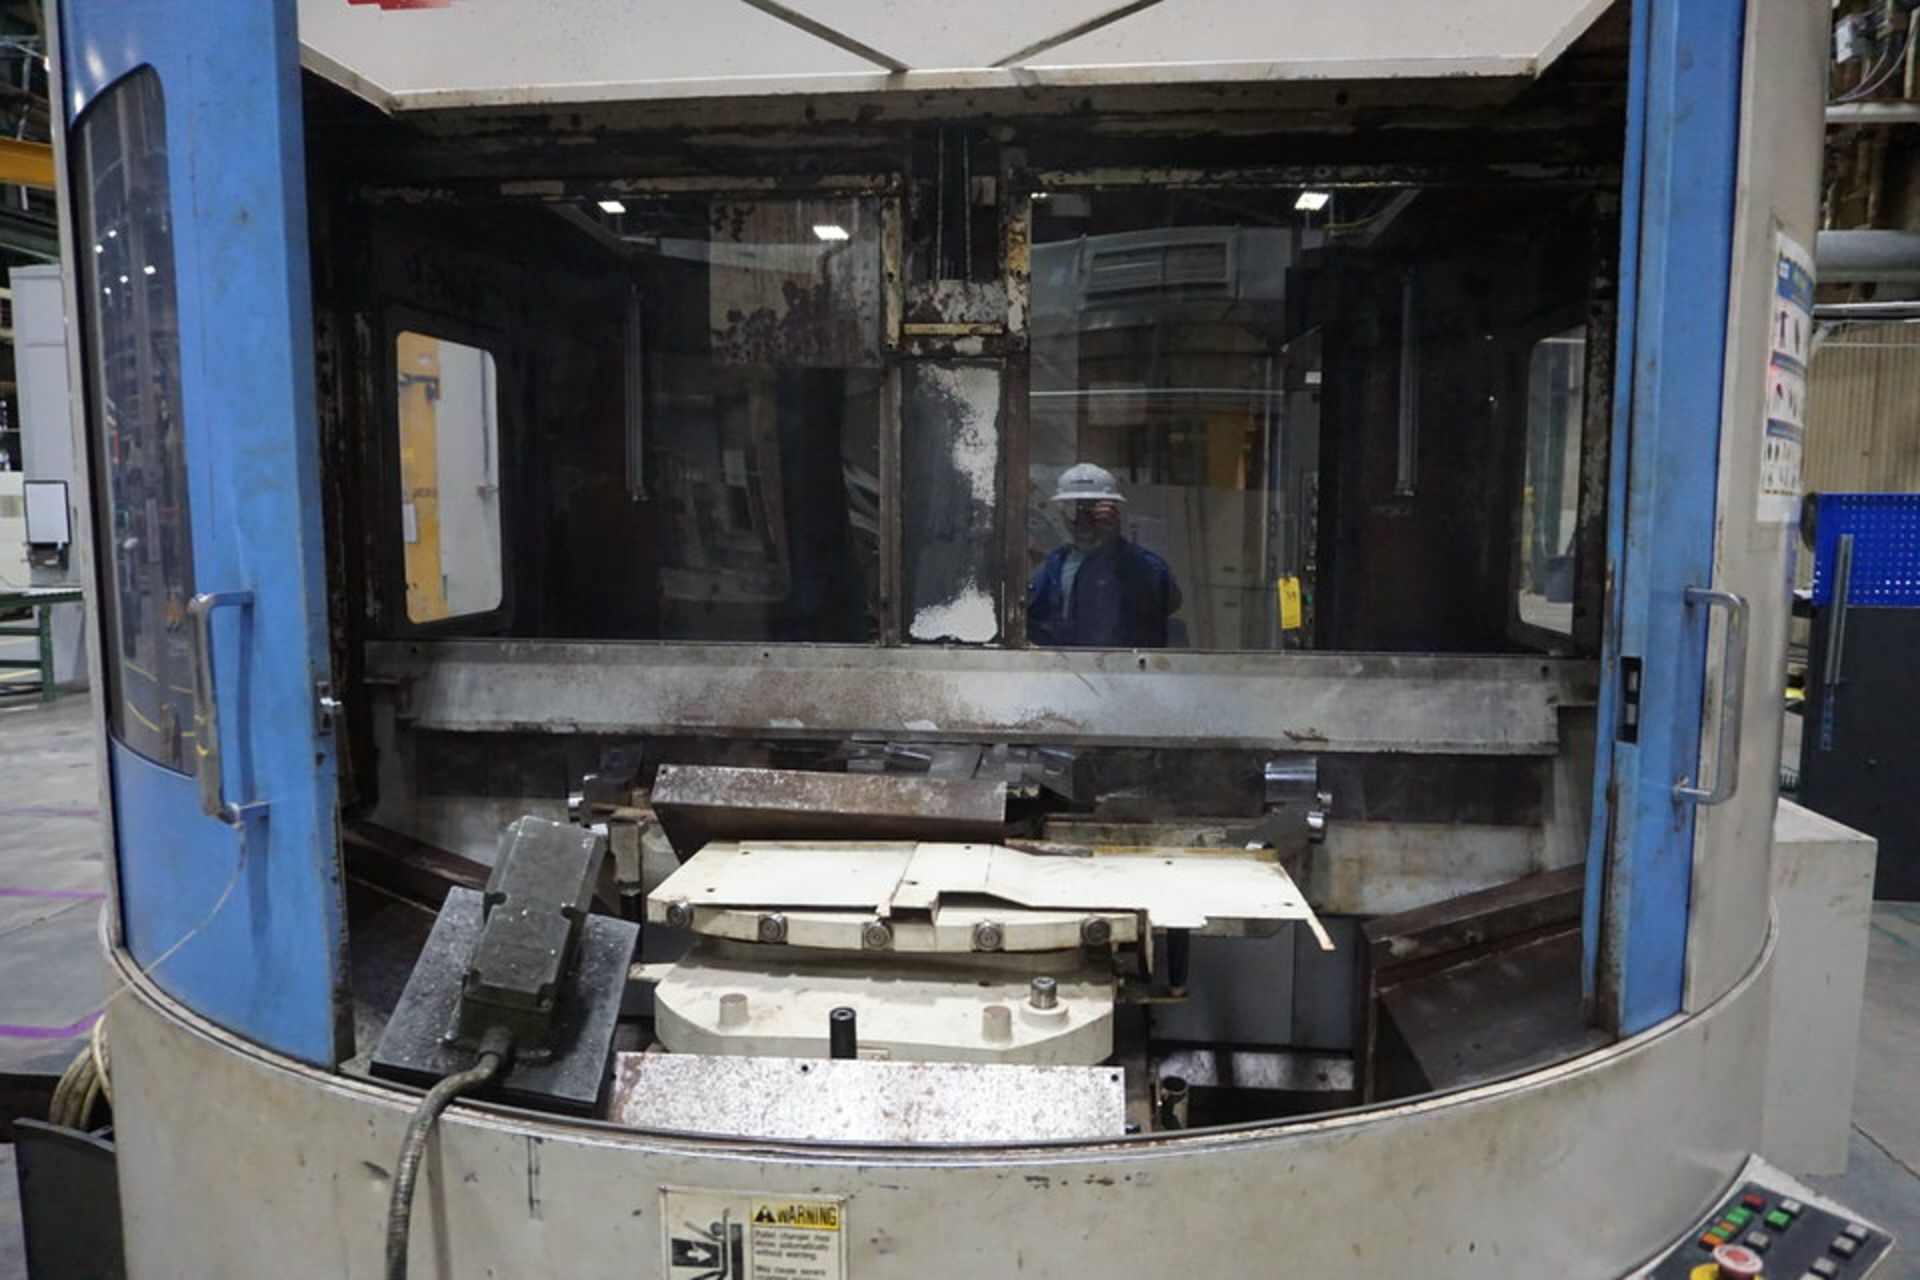 TOYODA HORIZONTAL MILLING MACHINE, DOM: 2000 (ASST#: P120201) - Image 3 of 6